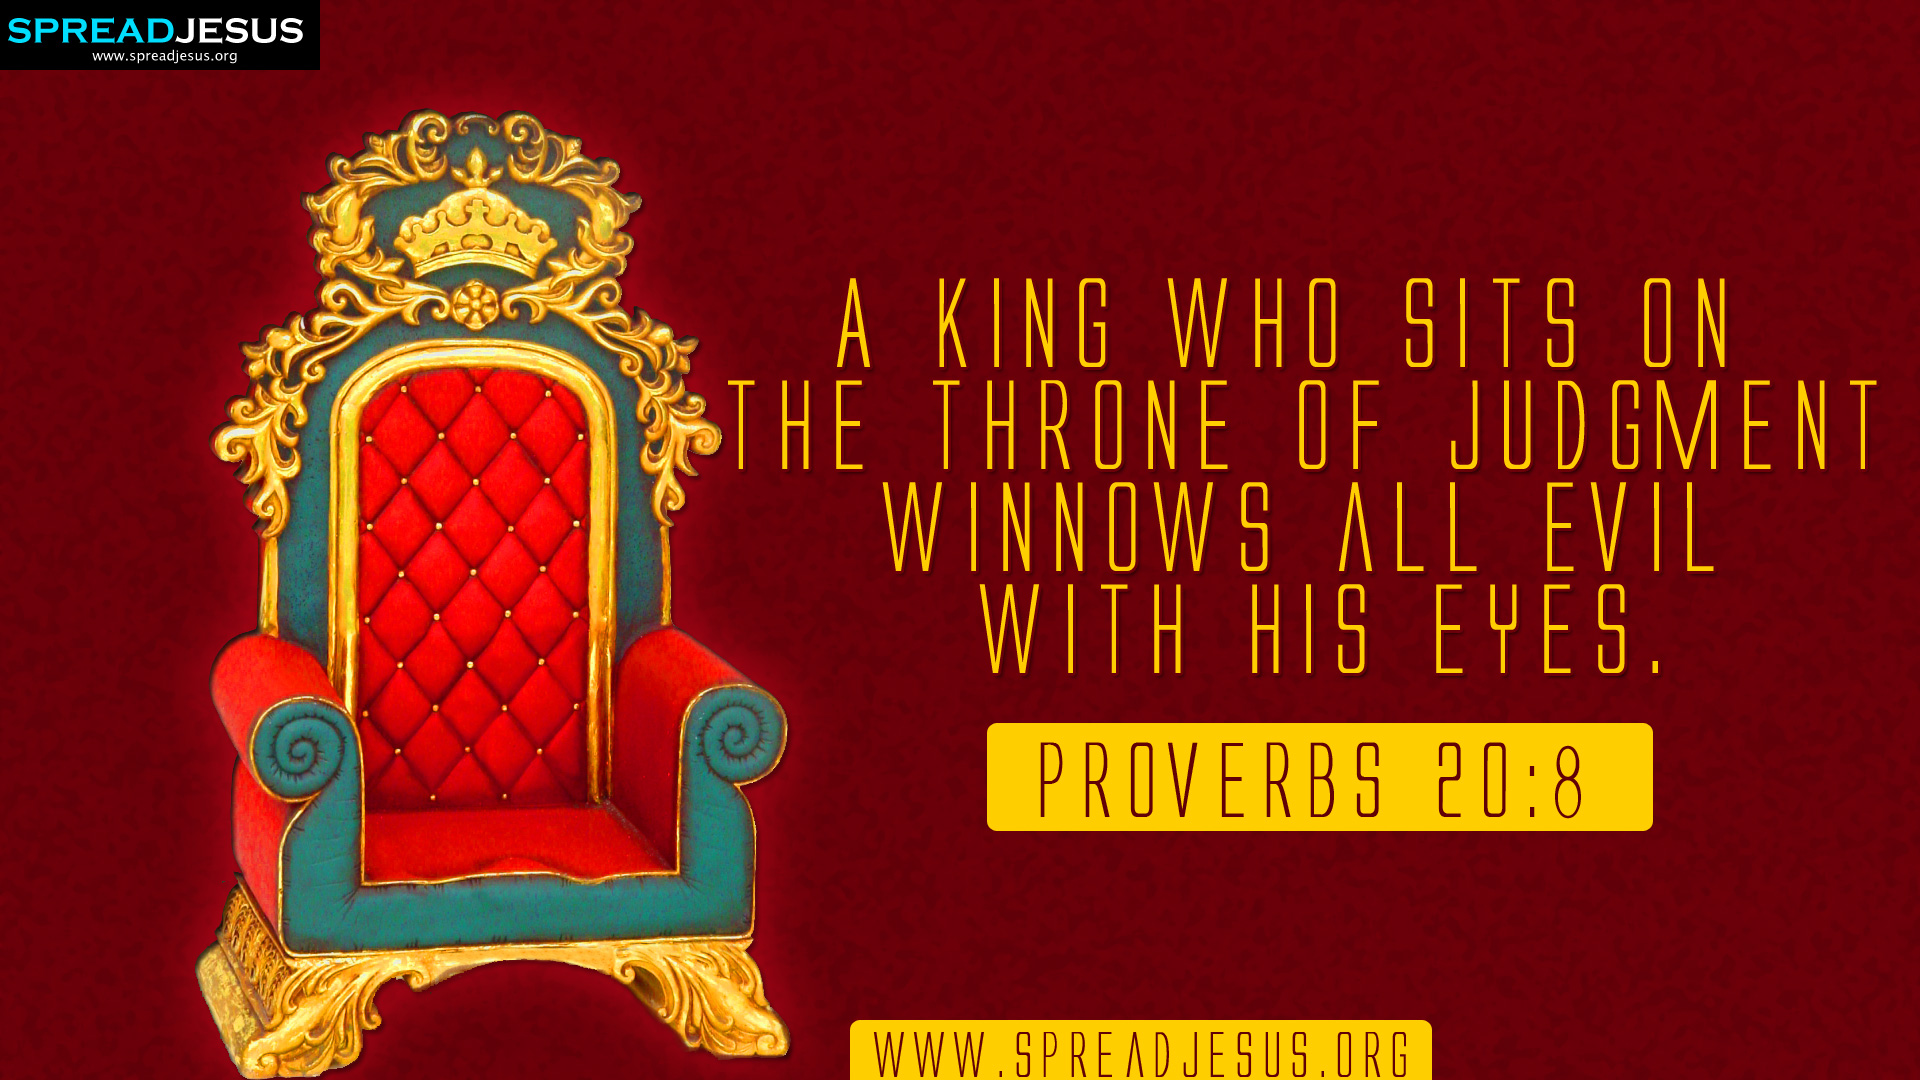 Bible quotes proverbs 208 hd wallpapers a king who sits on the throne bible quotes proverbs 208 hd wallpapers a king who sits on the altavistaventures